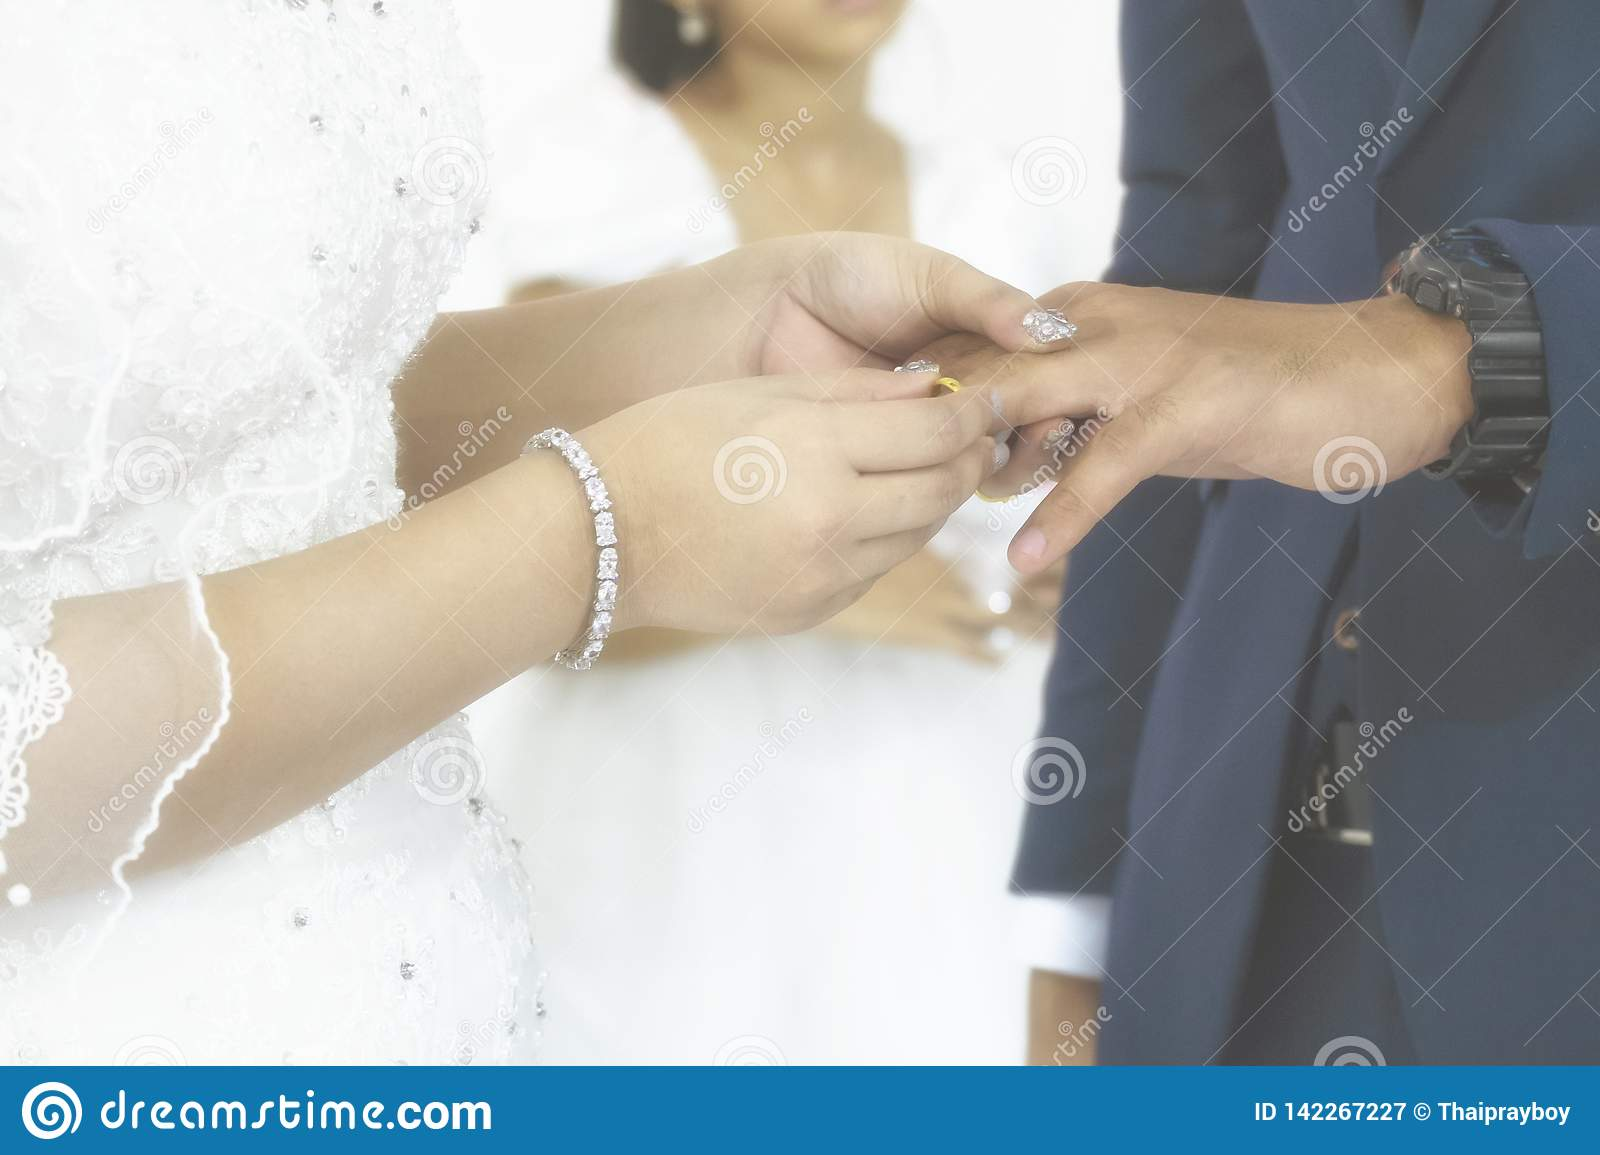 Bride Put the Wedding Ring to Her Groom in the Wedding Ceremony. Vintgae Style Picture with Gain Added